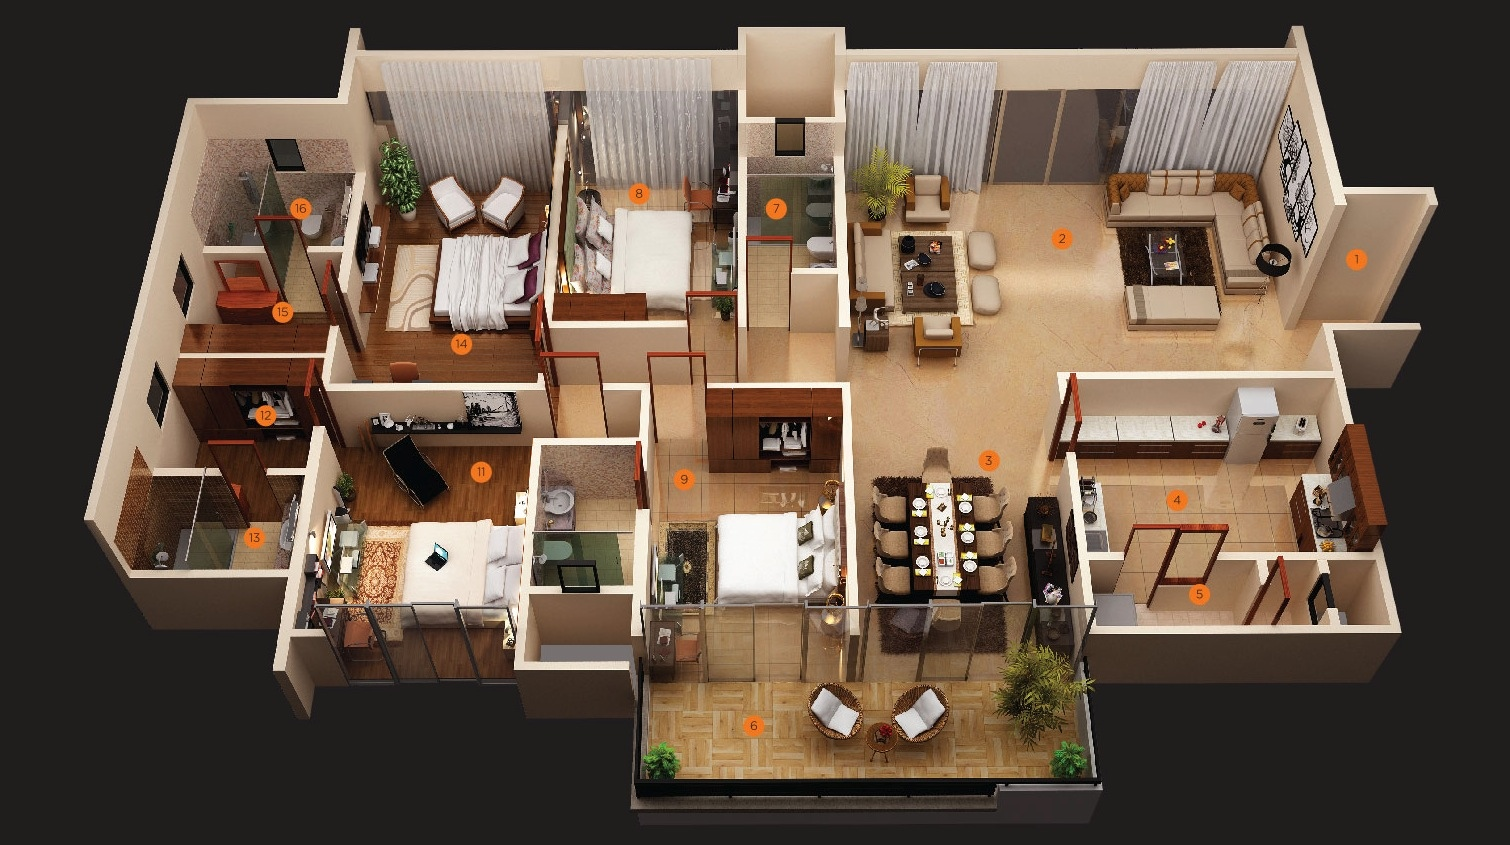 4 room home design